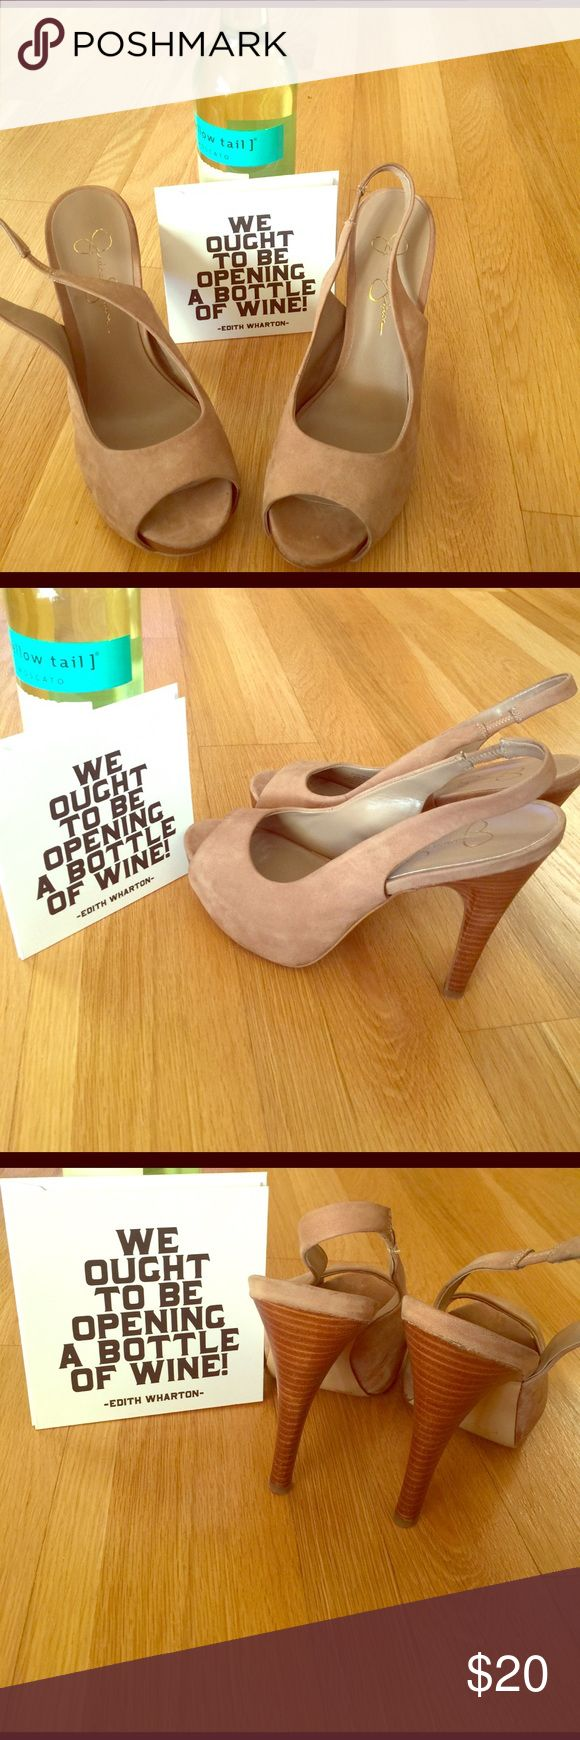 Avail now! Jessica Simpson Suede Heels Still on vacation but these are avail to ship immediately along with the other items that say Avail Now! These Jessica Simpson heels are Suede, preowned and are a size 8.5 Jessica Simpson Shoes Heels